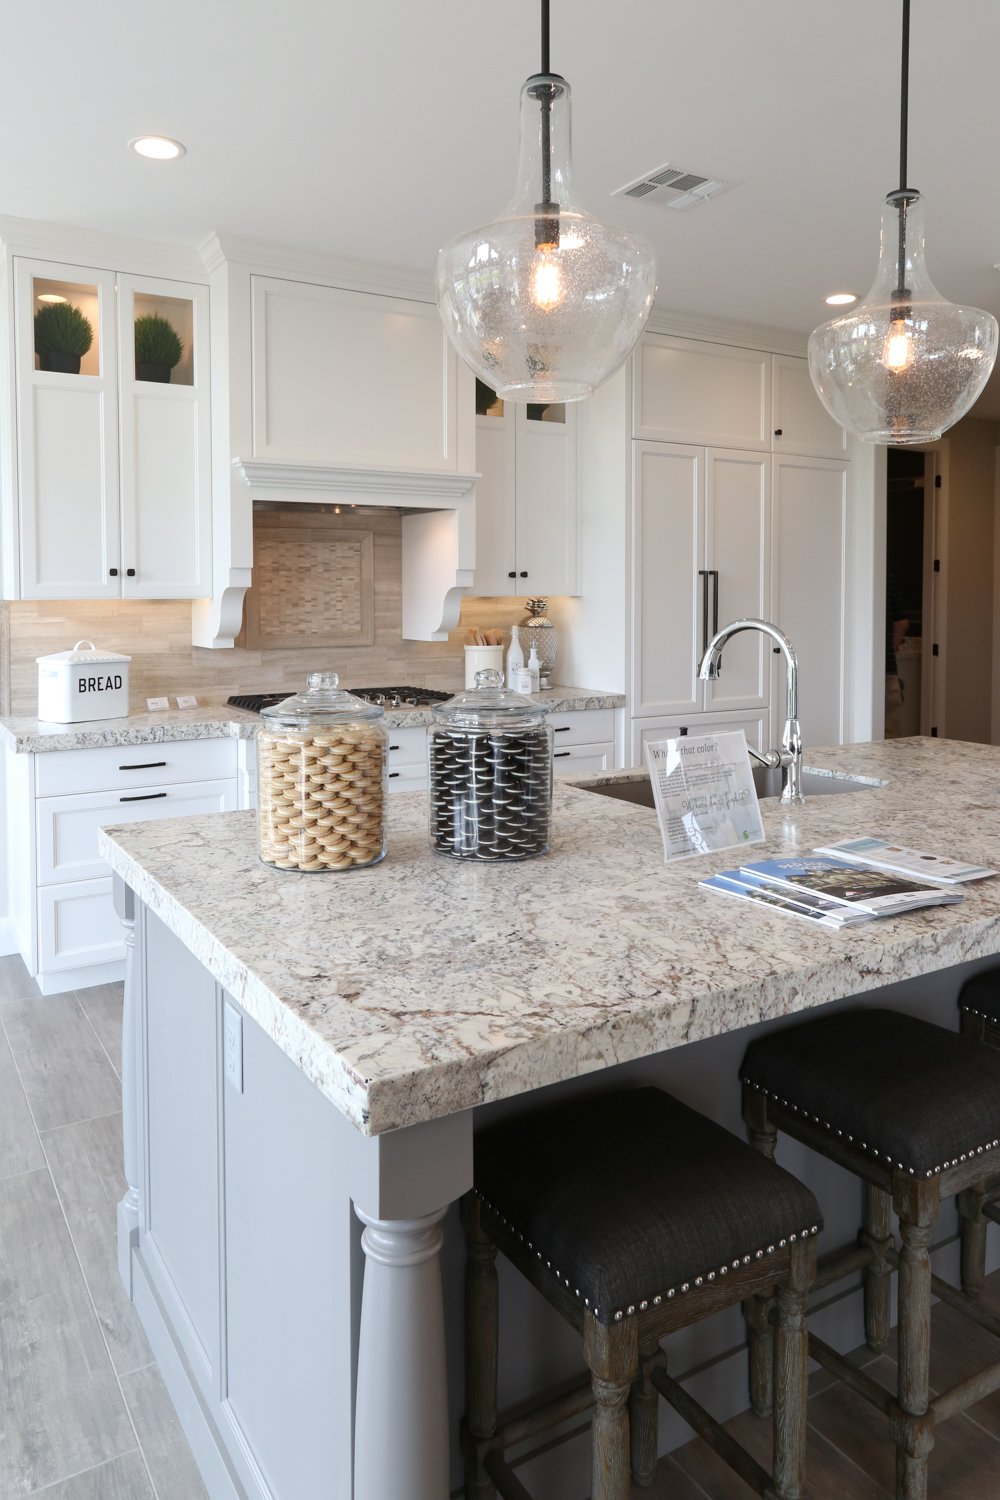 Open kitchen design with white cabinetry